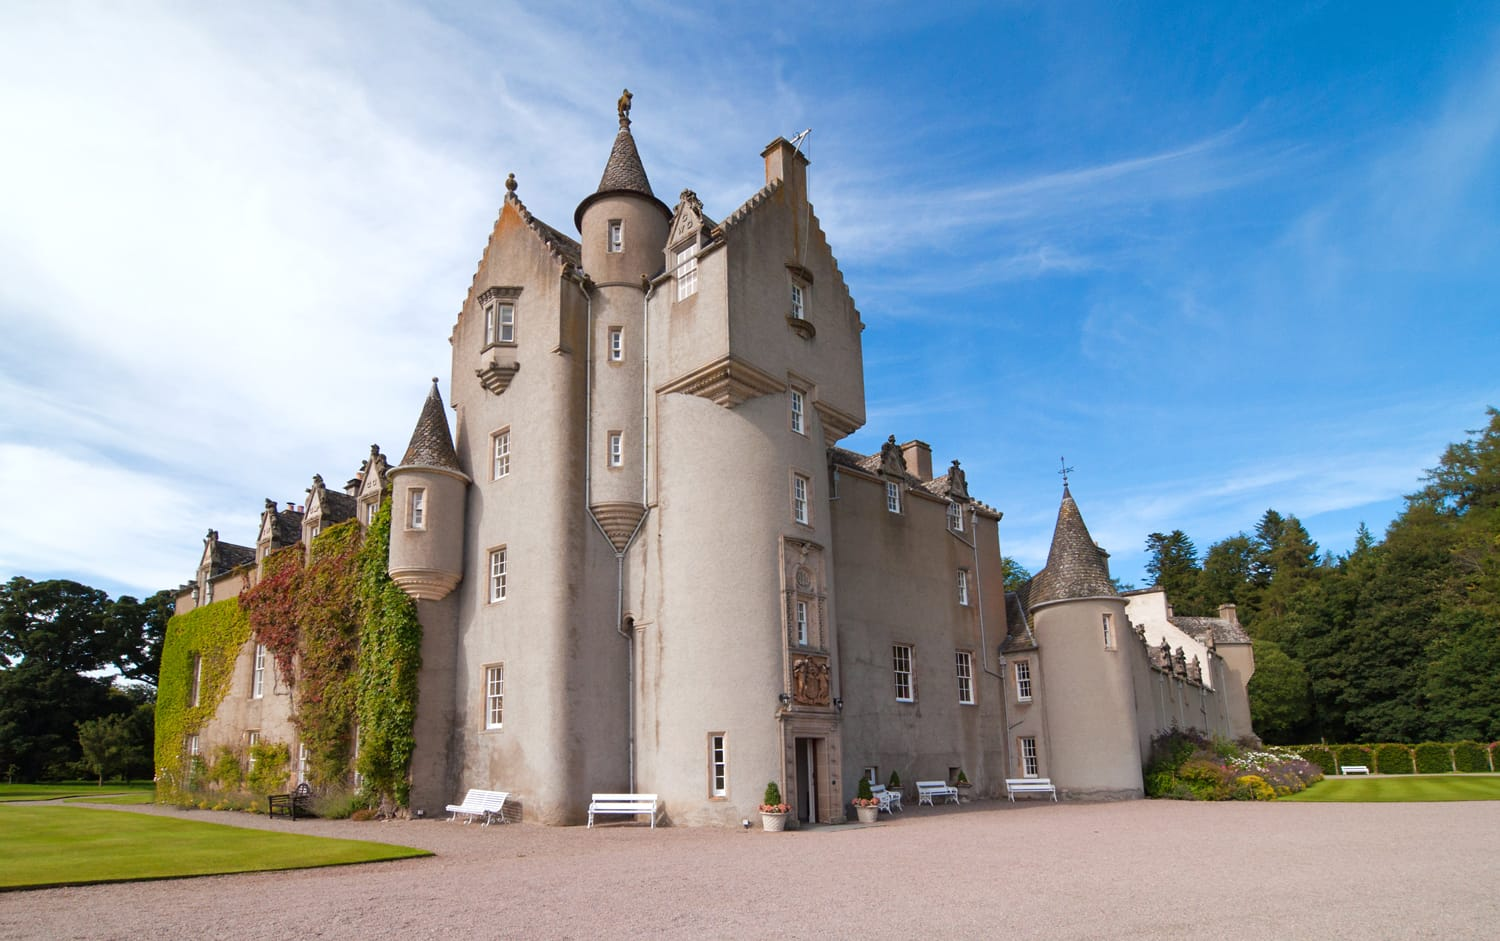 Ballindalloch Castle in Scotland